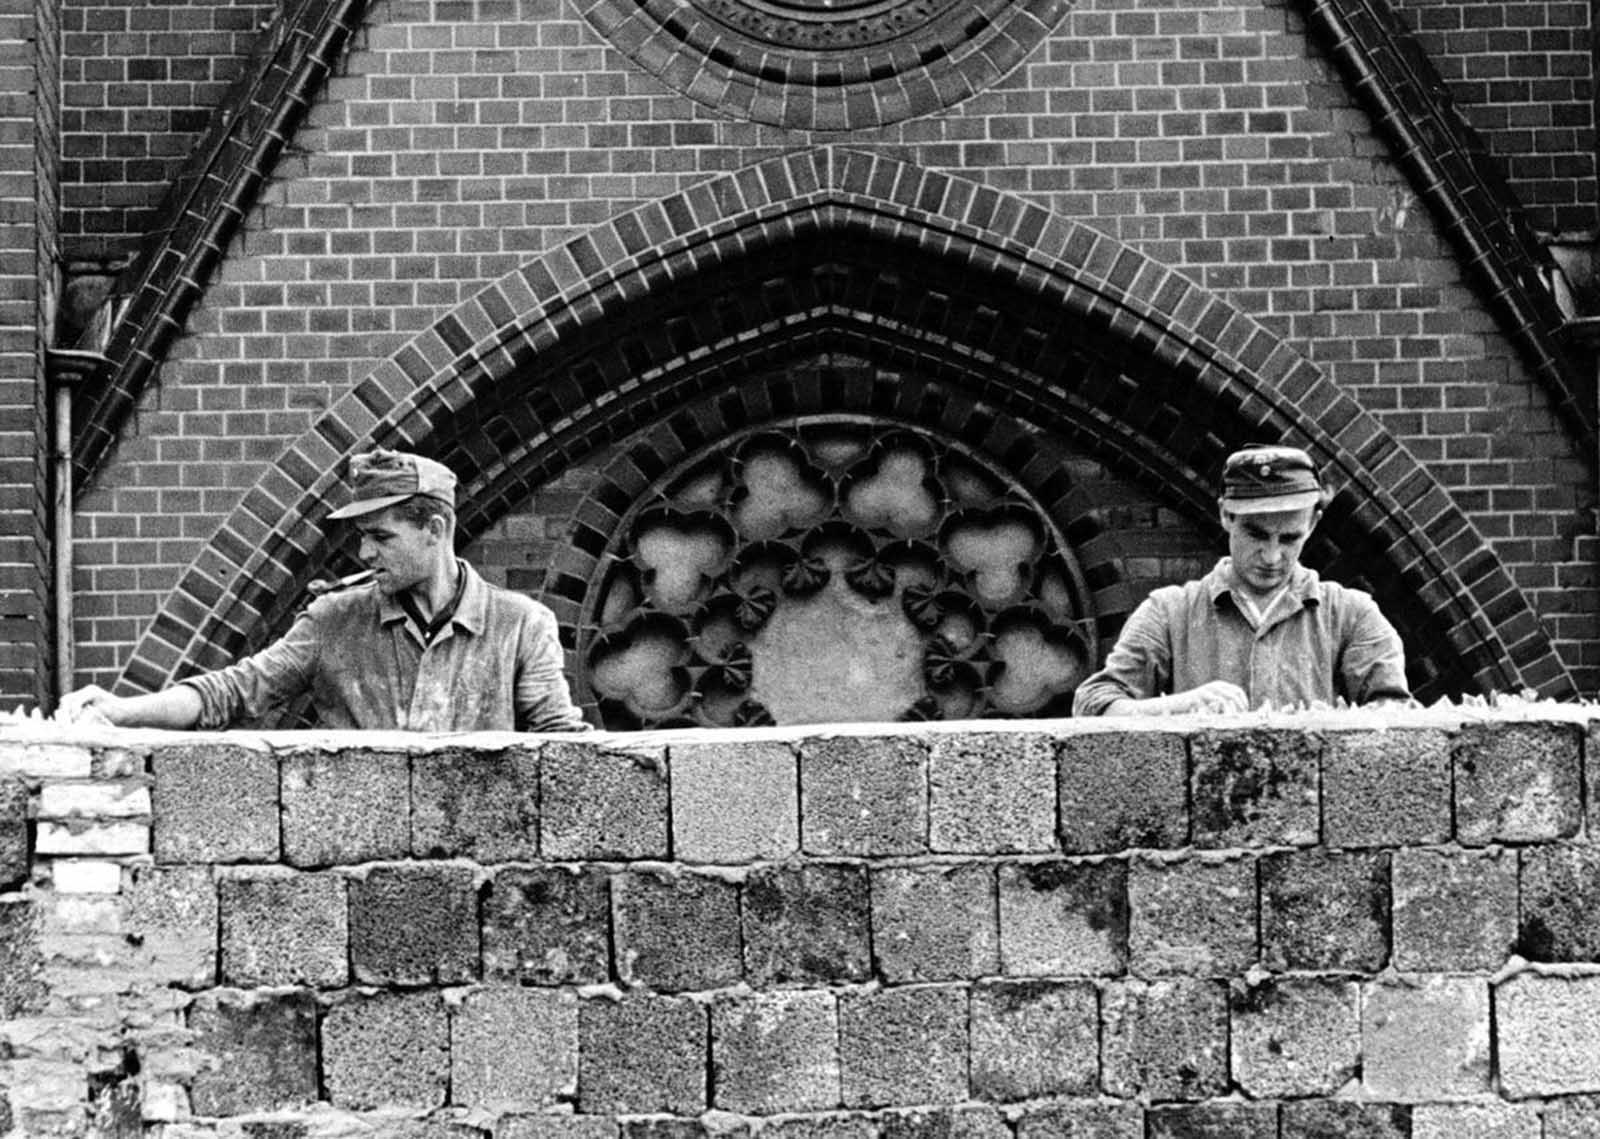 Blocking the church - Two East Germans work on a huge 15 foot wall, placing pieces of broken glass on the top to prevent East Berliners from escaping.